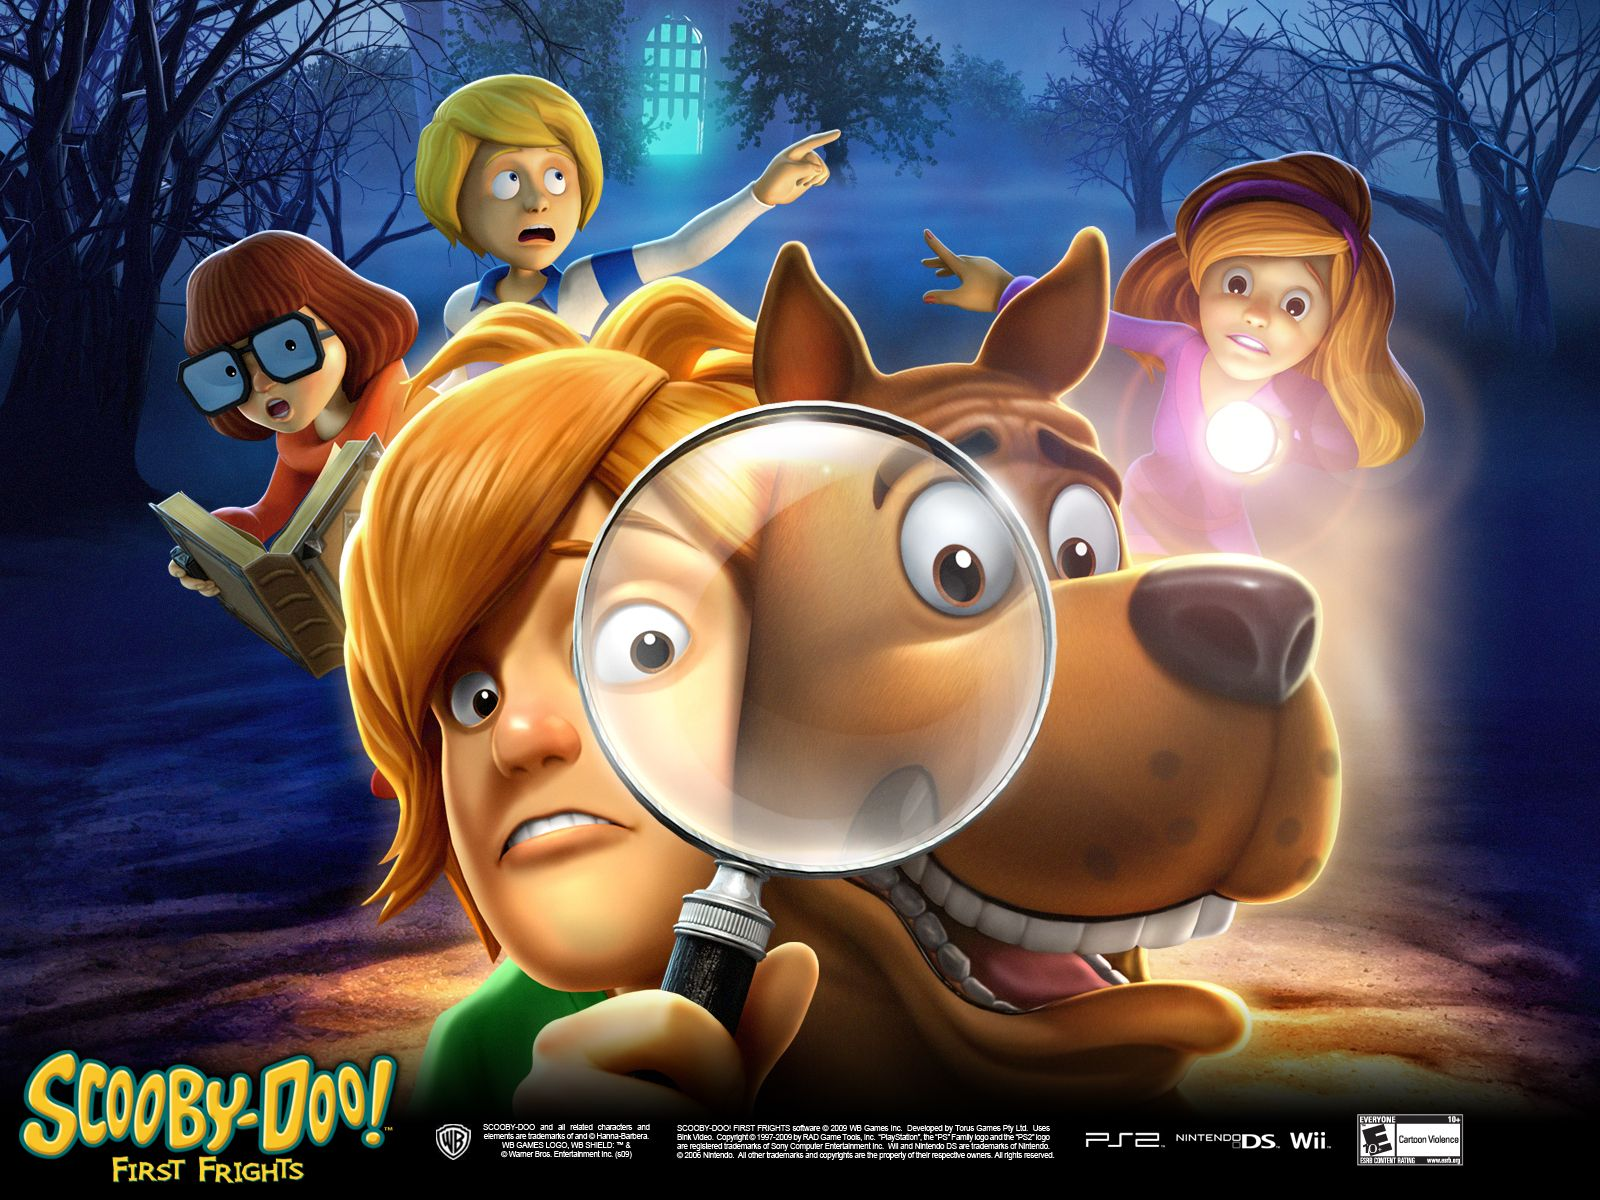 Sooby Doo First Frights Scooby Doo Scooby Scooby Doo Games